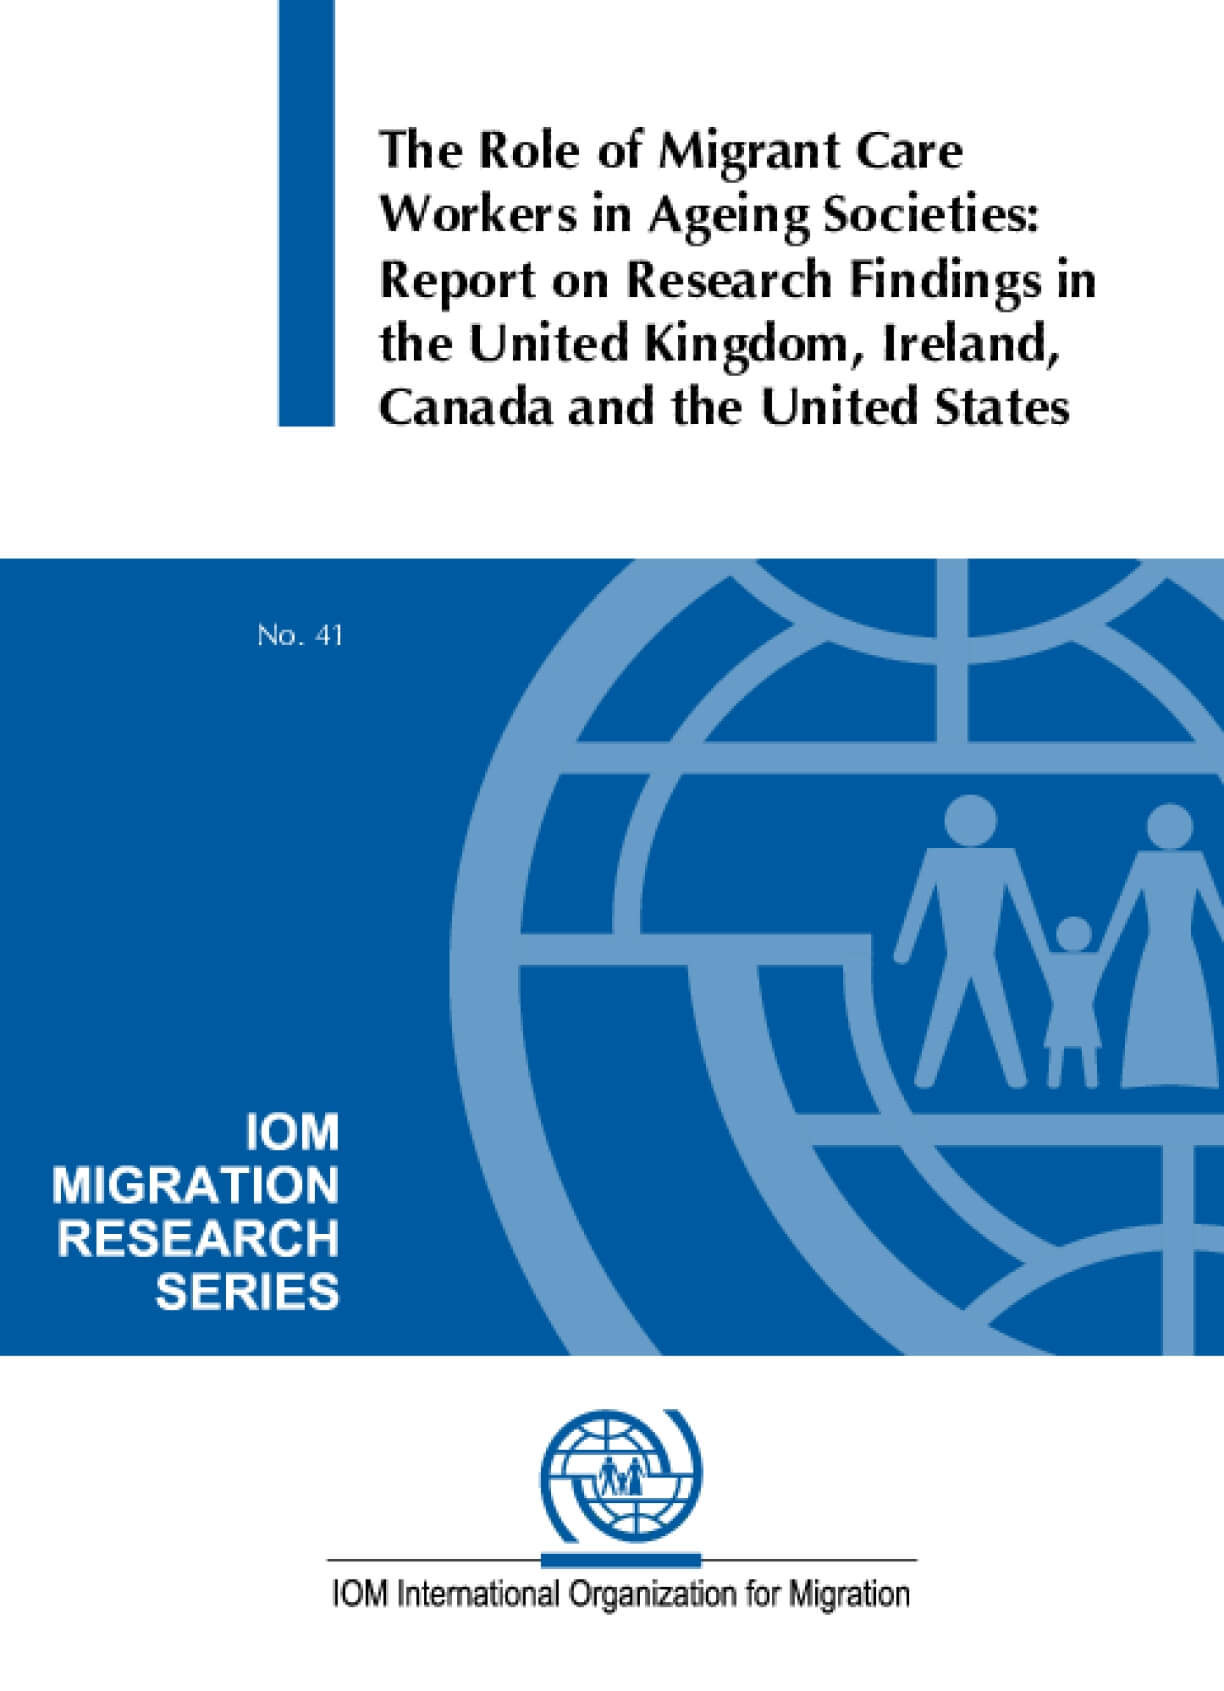 The Role of Migrant Care Workers in Ageing Societies: Report on Research Findings in the U.K., Ireland, Canada and the U.S.